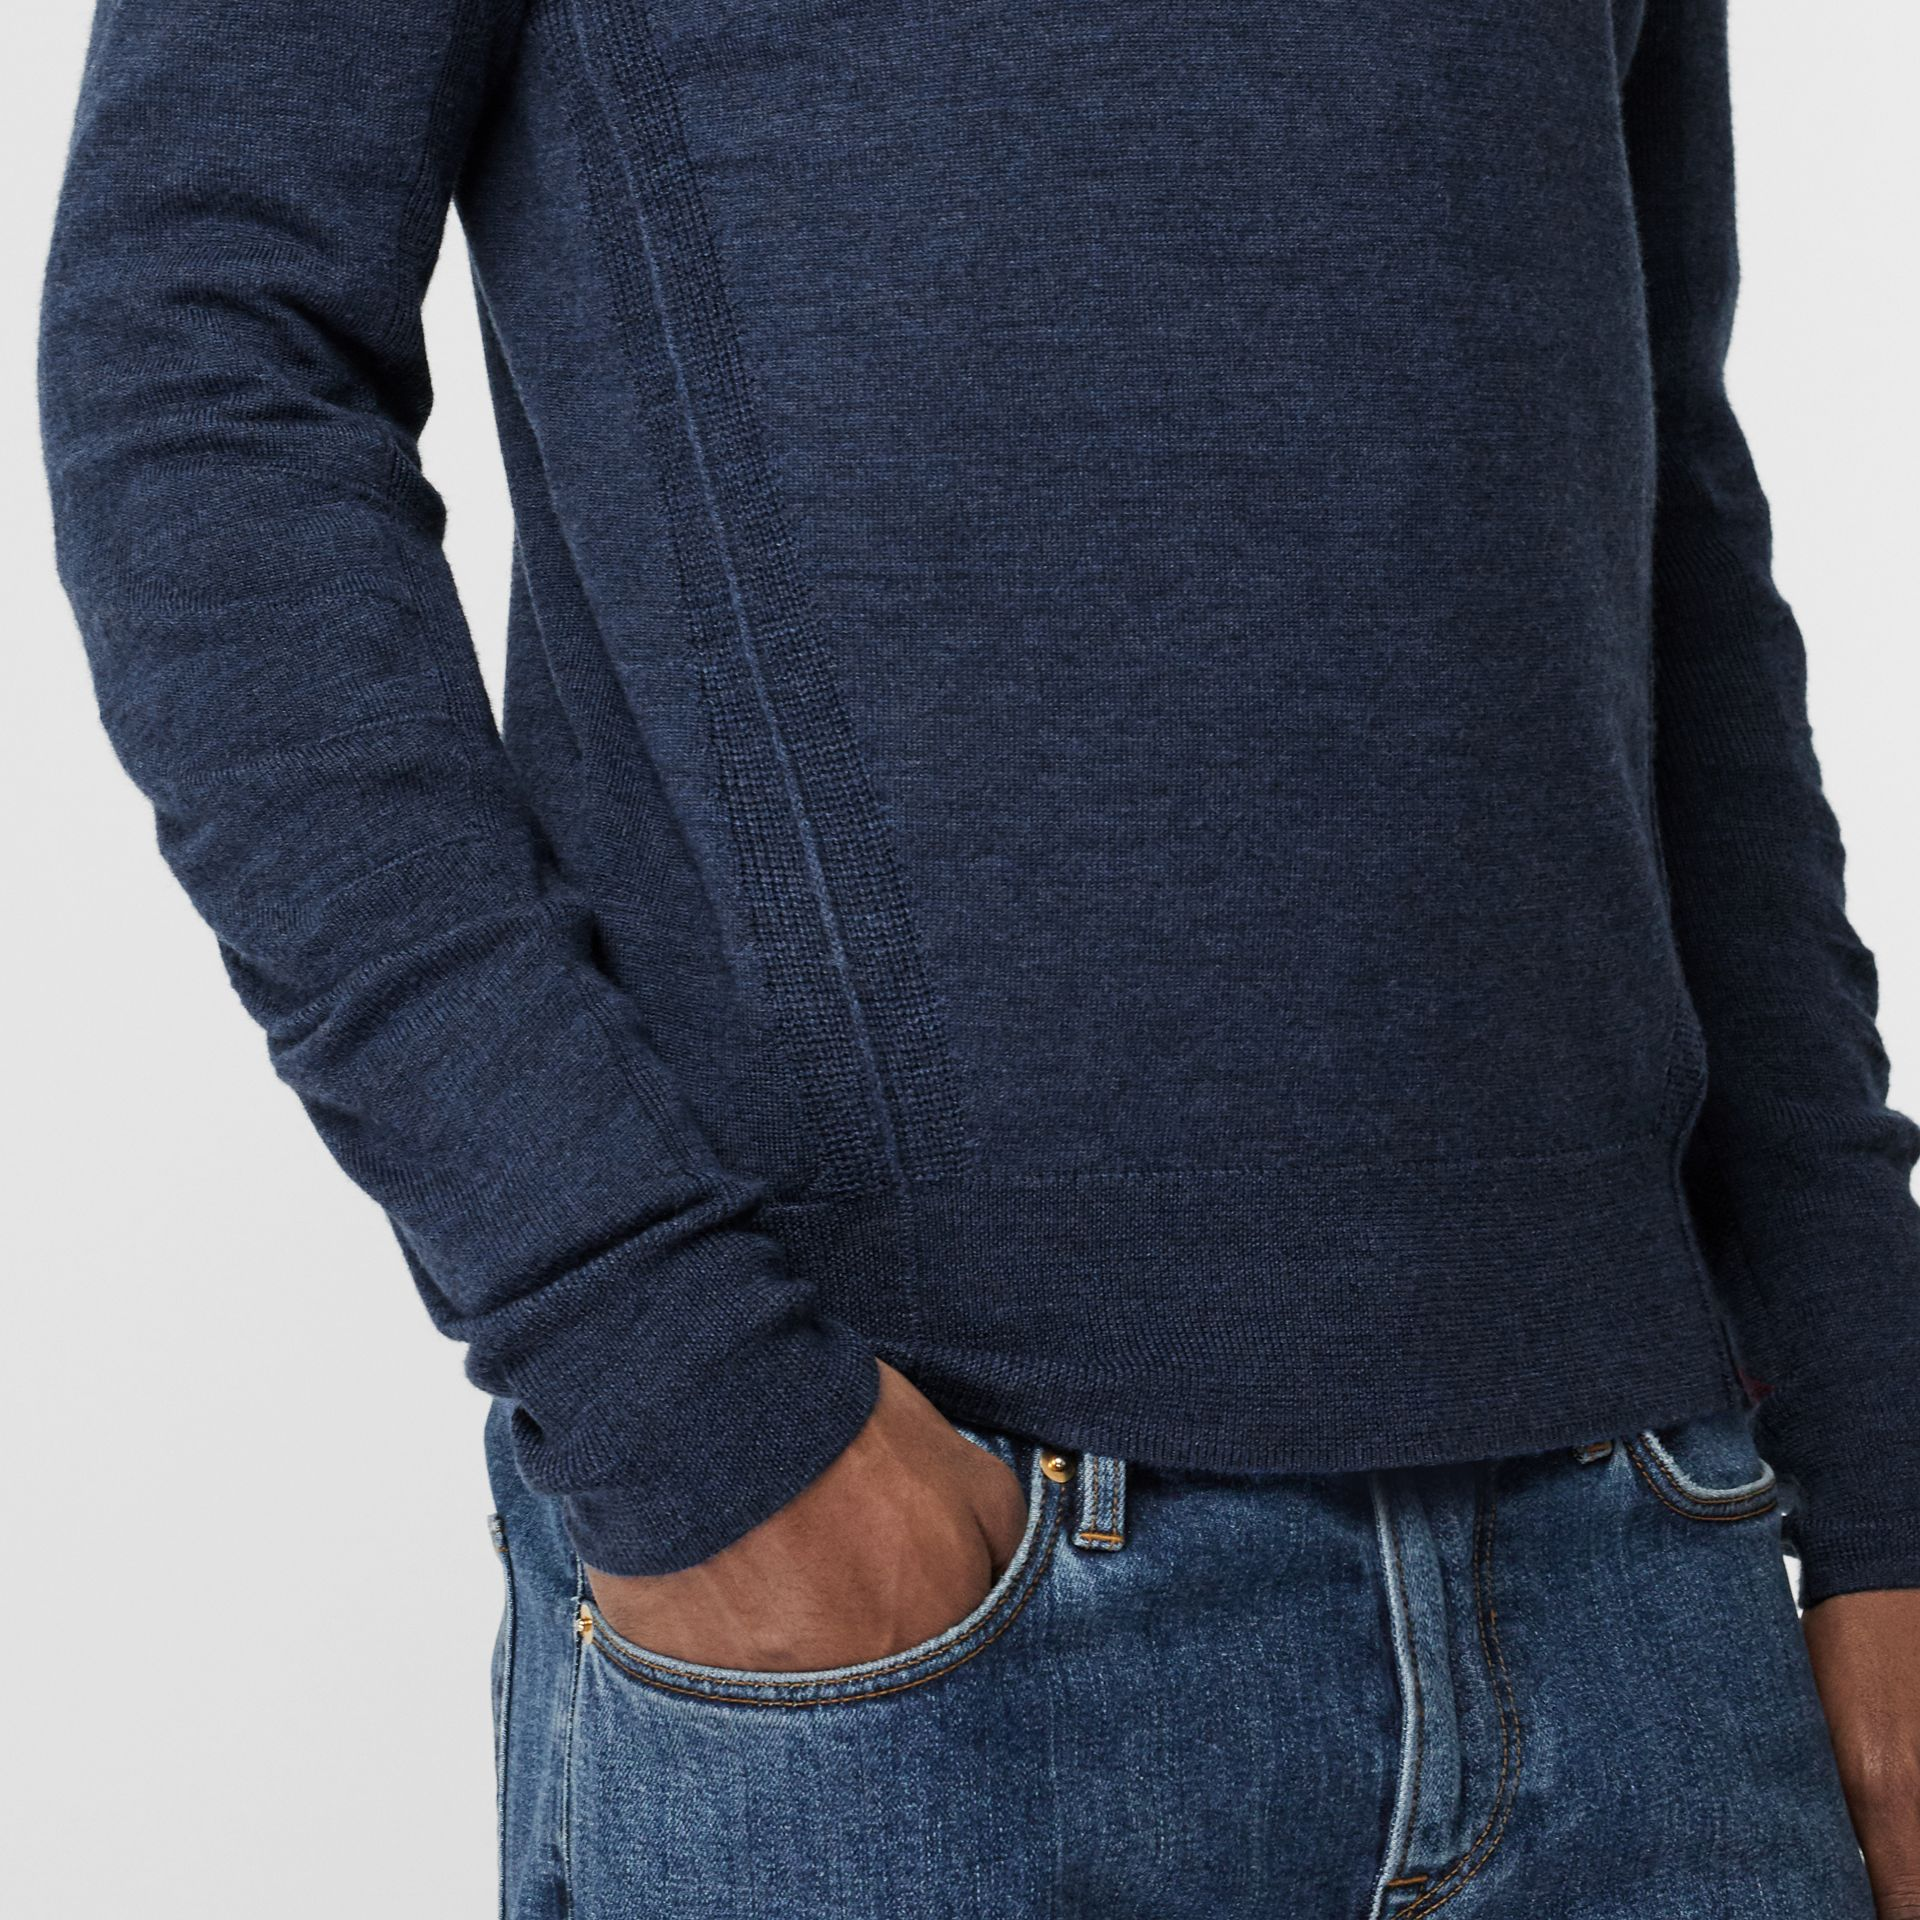 Merino Wool Half-zip Sweater in Storm Blue - Men | Burberry - gallery image 1